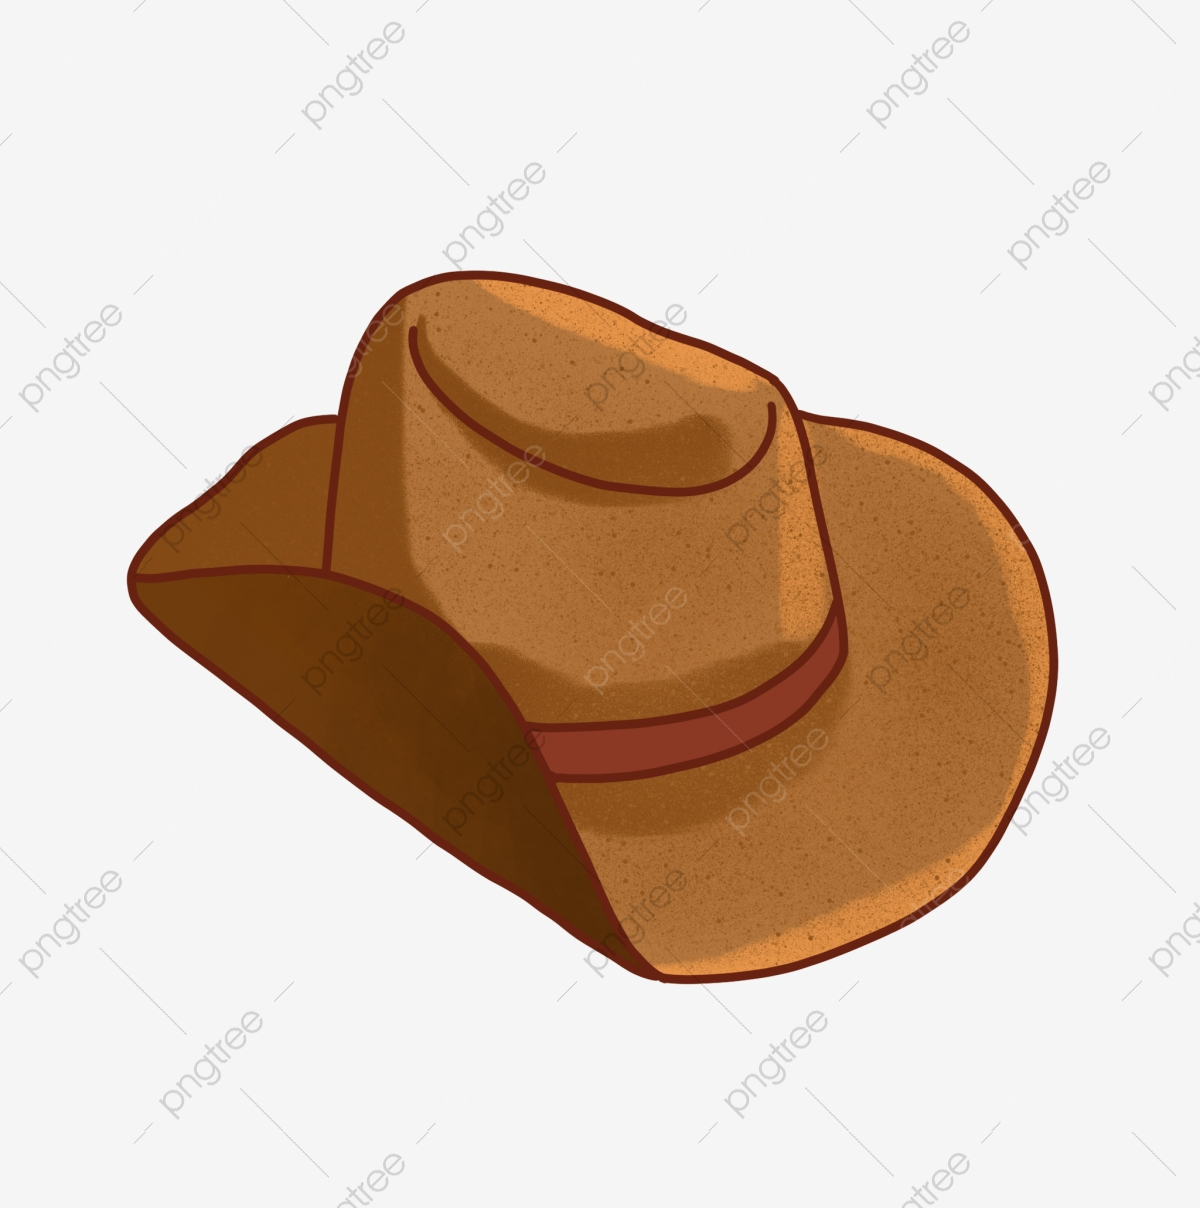 Cowboy Hat Png Images Vector And Psd Files Free Download On Pngtree Explore the largest selection of authentic cowboy hats online at nrs. https pngtree com freepng western cowboy hat png free material 4425233 html